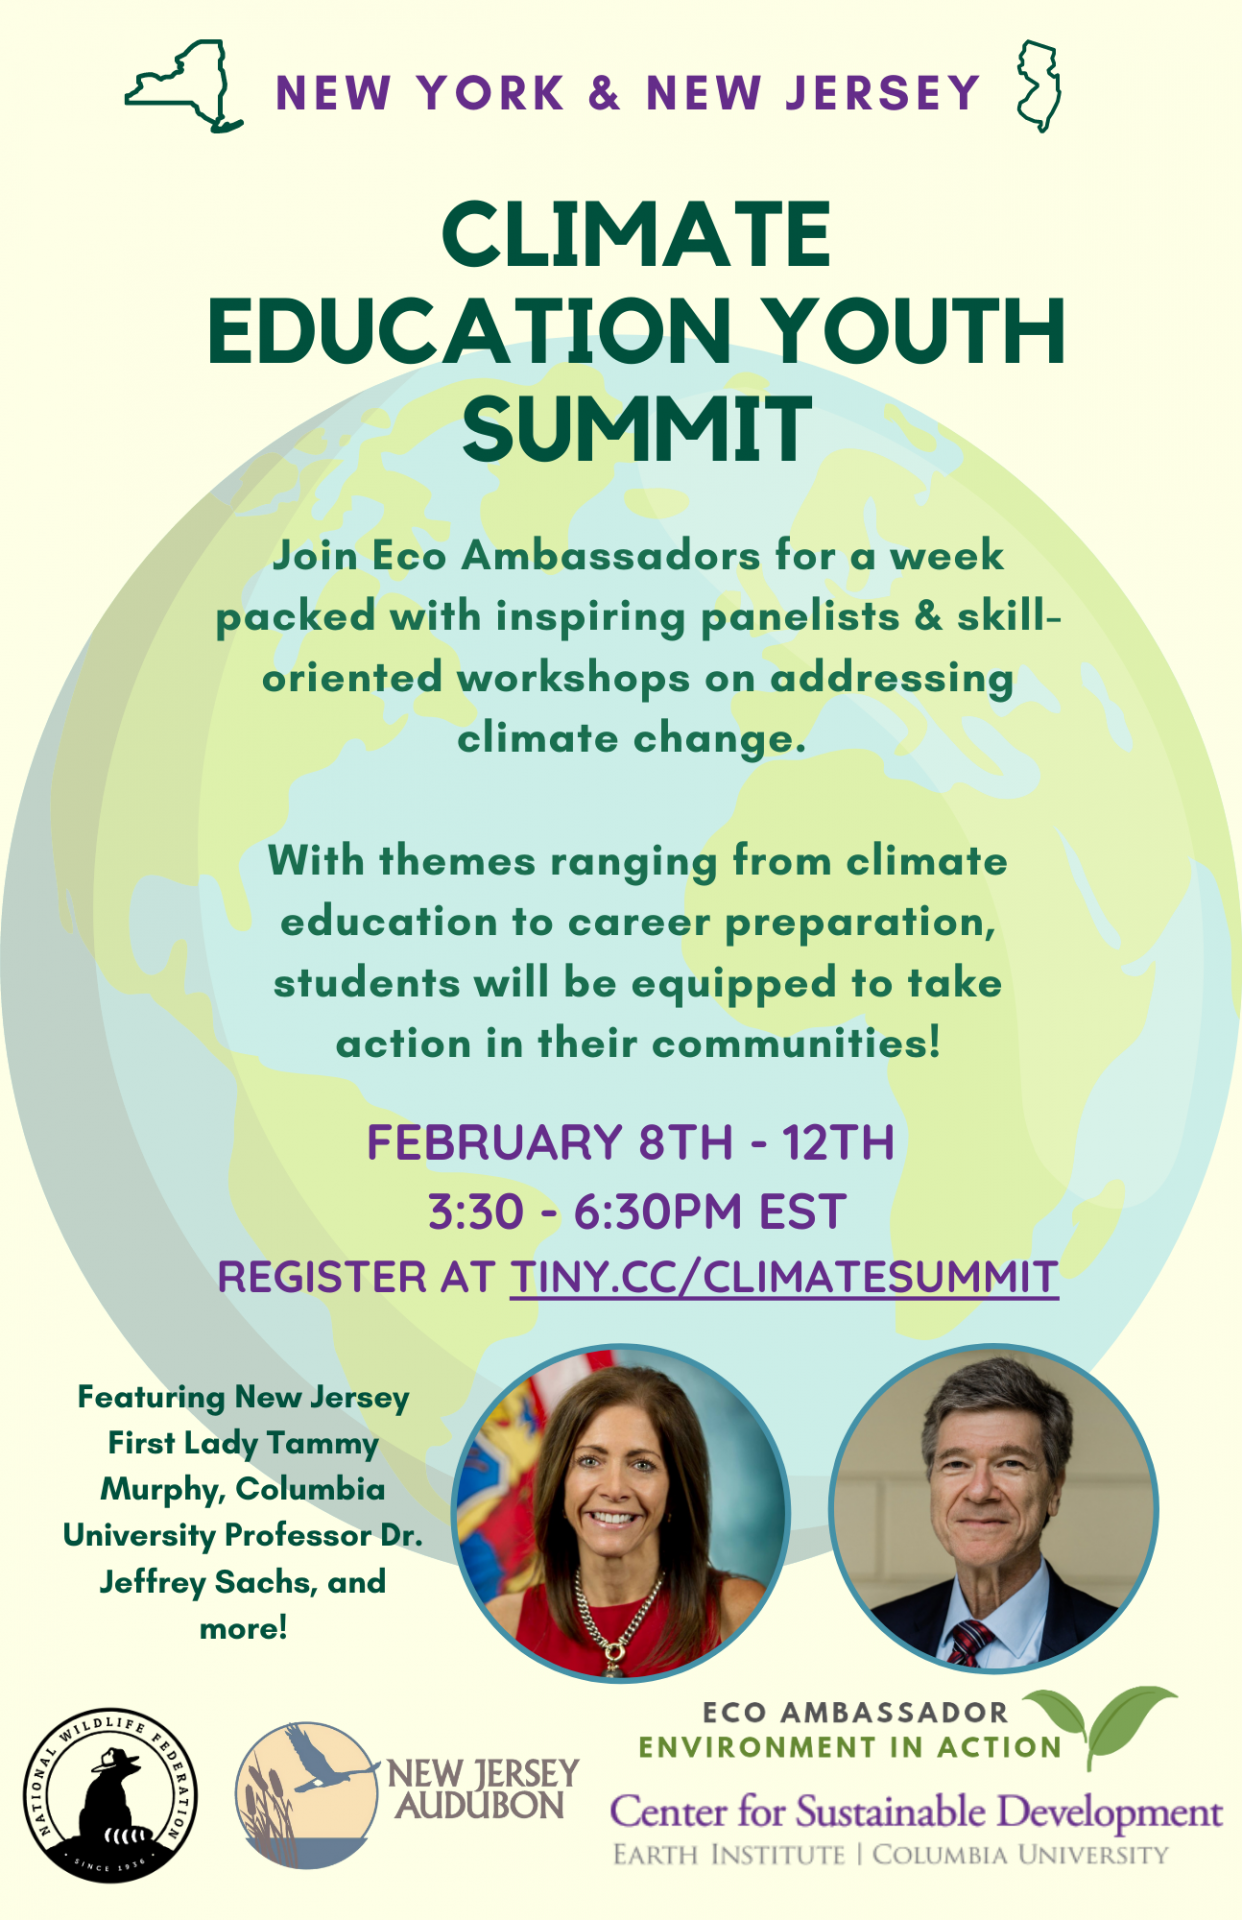 Poster about the NY NJ Climate Education Youth Summit with summary and photo of First Lady of NJ Tammy Murphy as keynote speaker and Professor Jeffrey Sachs as guest speaker